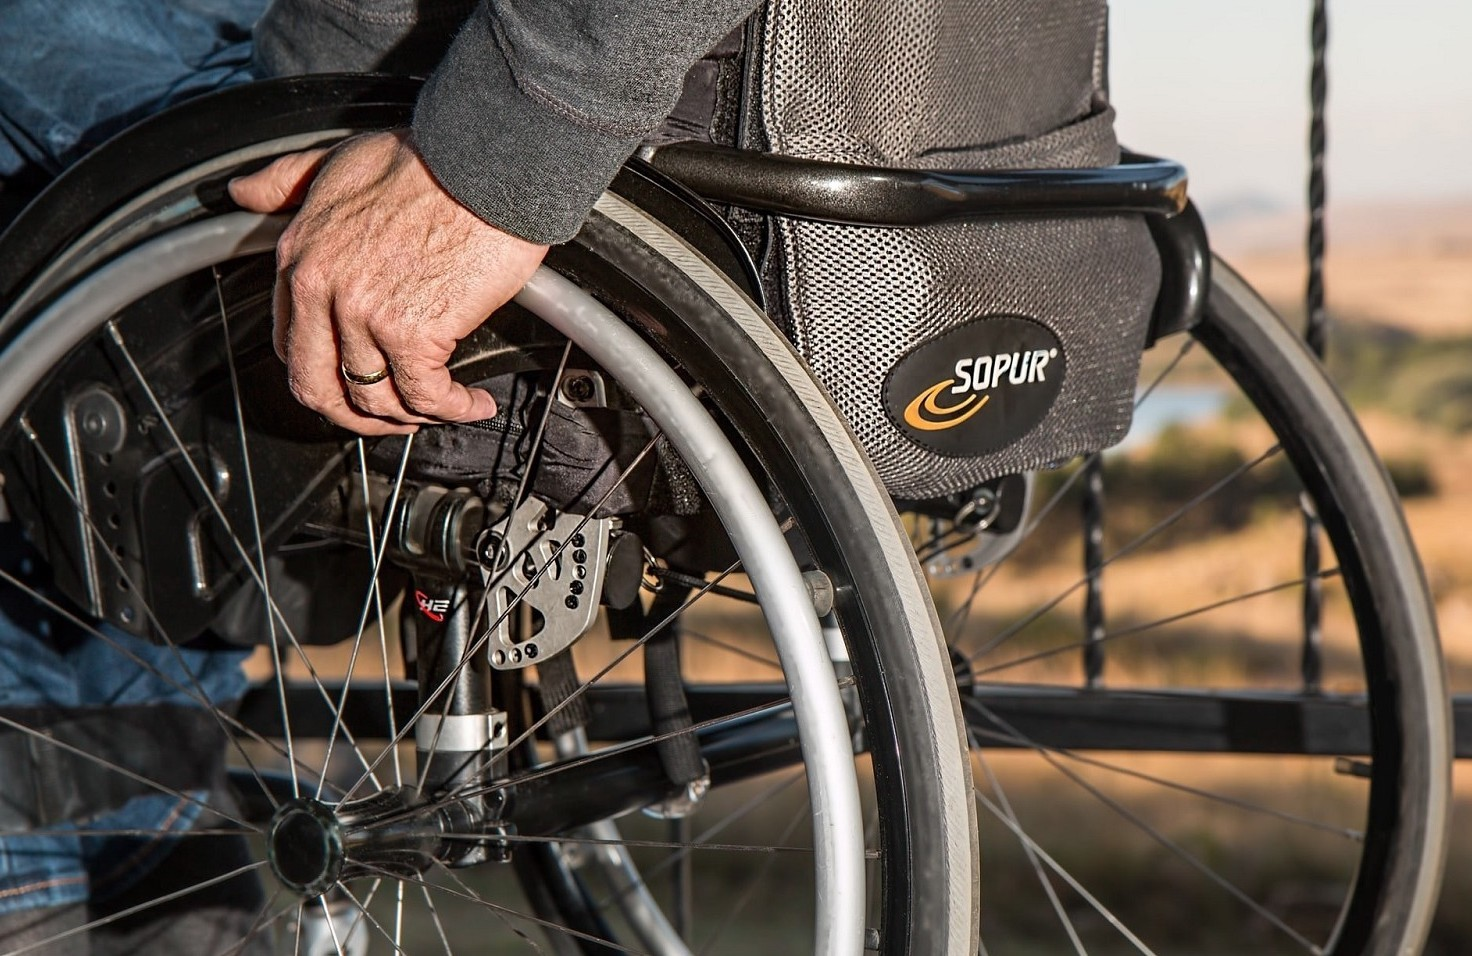 Pensione anticipata 2020 per chi assiste disabile con legge 104